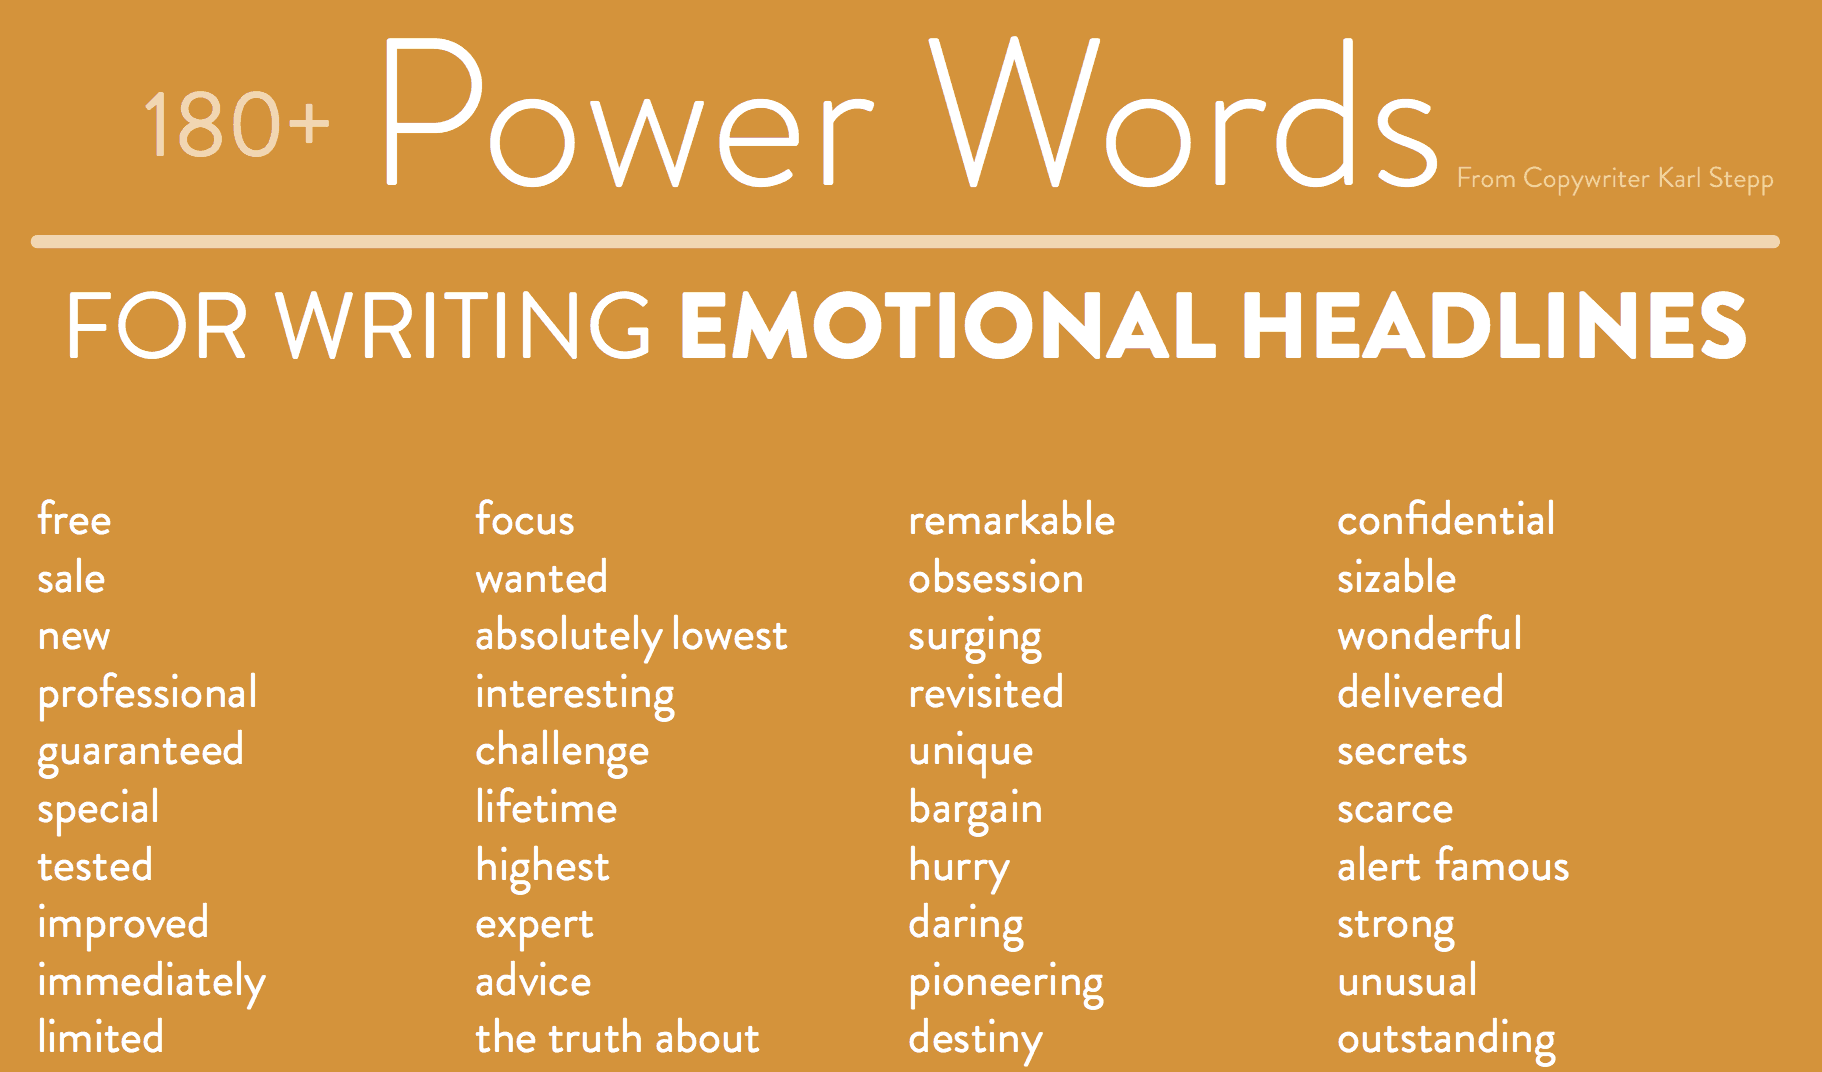 1000 Power Words That Will Make You A Social Media Rockstar